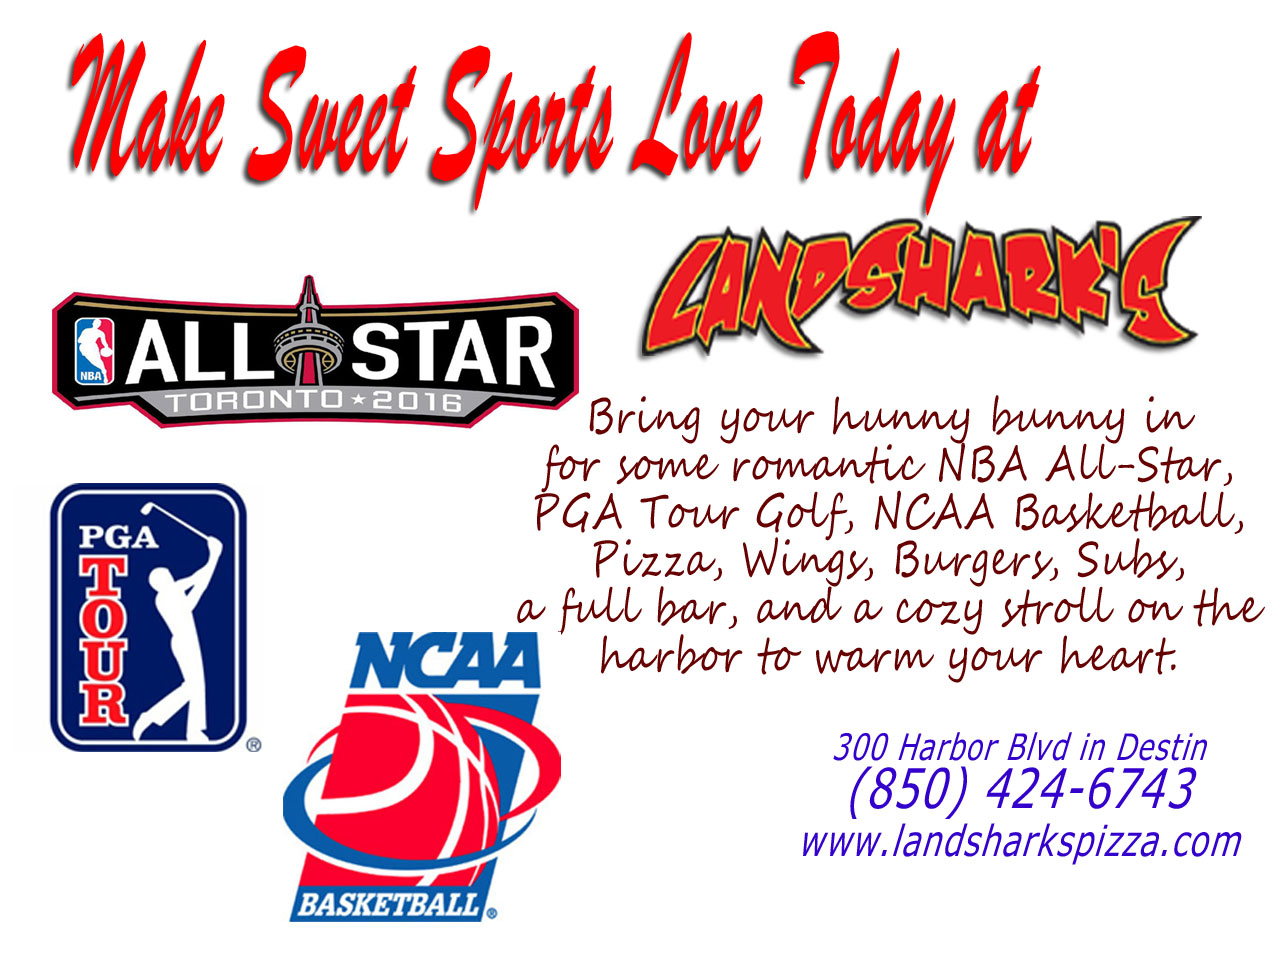 Valentines Day Sports at Landsharks Pizza and Sports Bar Destin FL